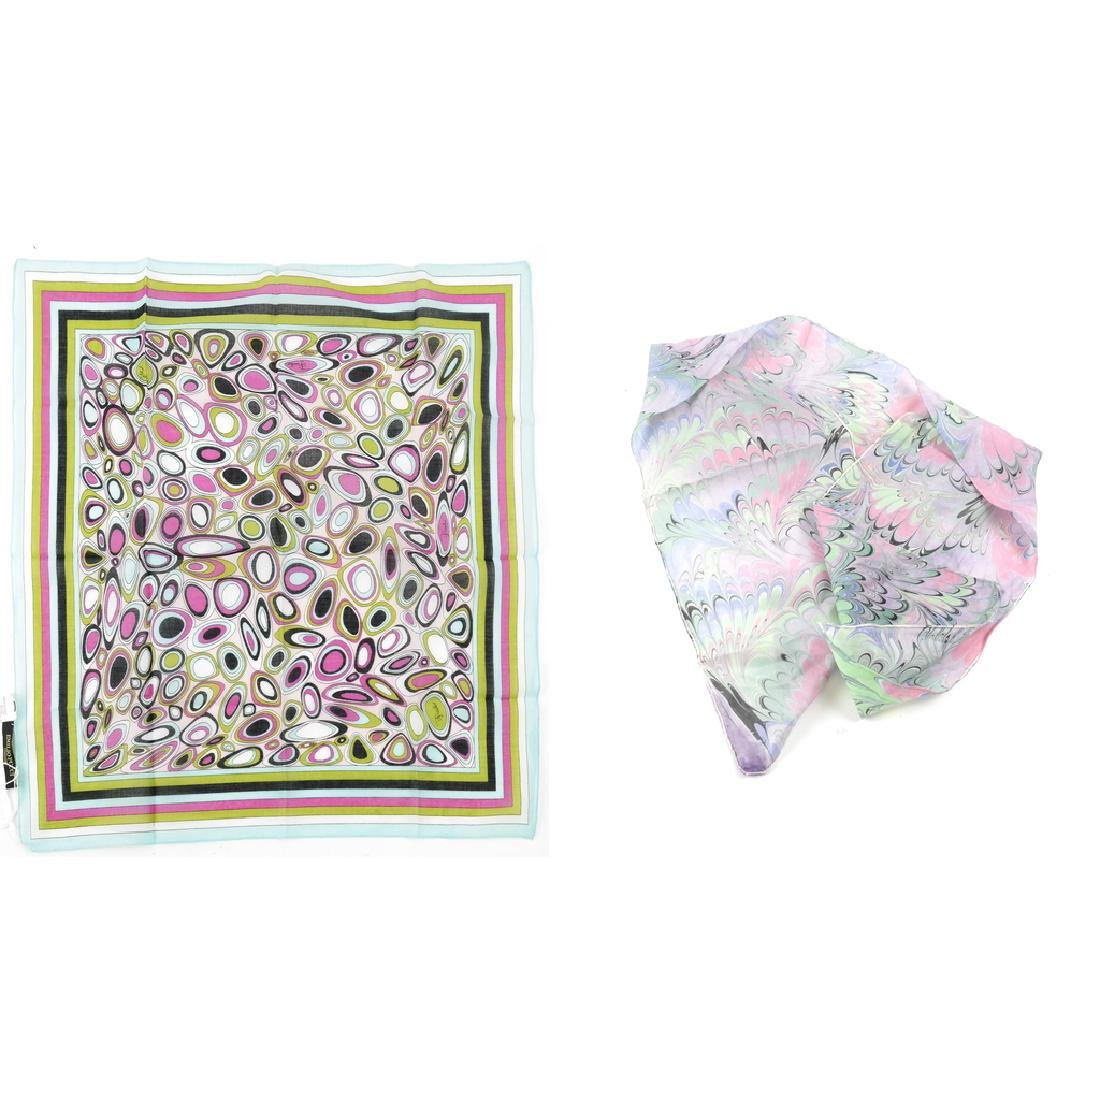 Emilio Pucci Scarf and Another